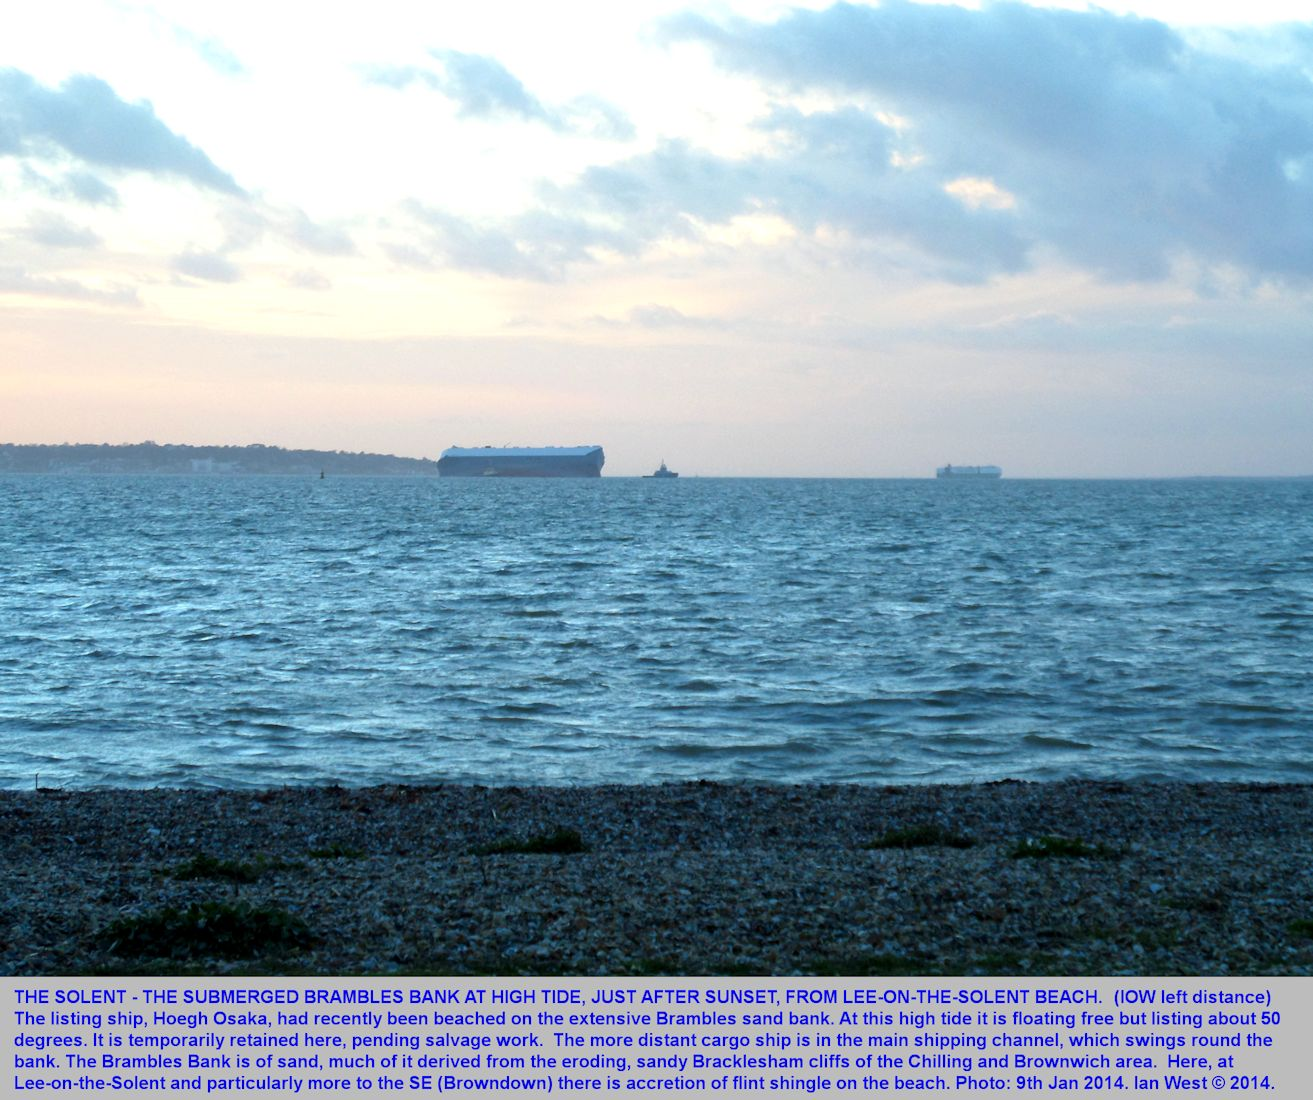 The sea area of the Brambles Bank, with the West Solent beyond, seen from the Lee-on-the-Solent beach just after sunset, with the formerly beached ship, the Hoegh Osaka, in the middle distance, and part of the Isle of Wight in the left distance